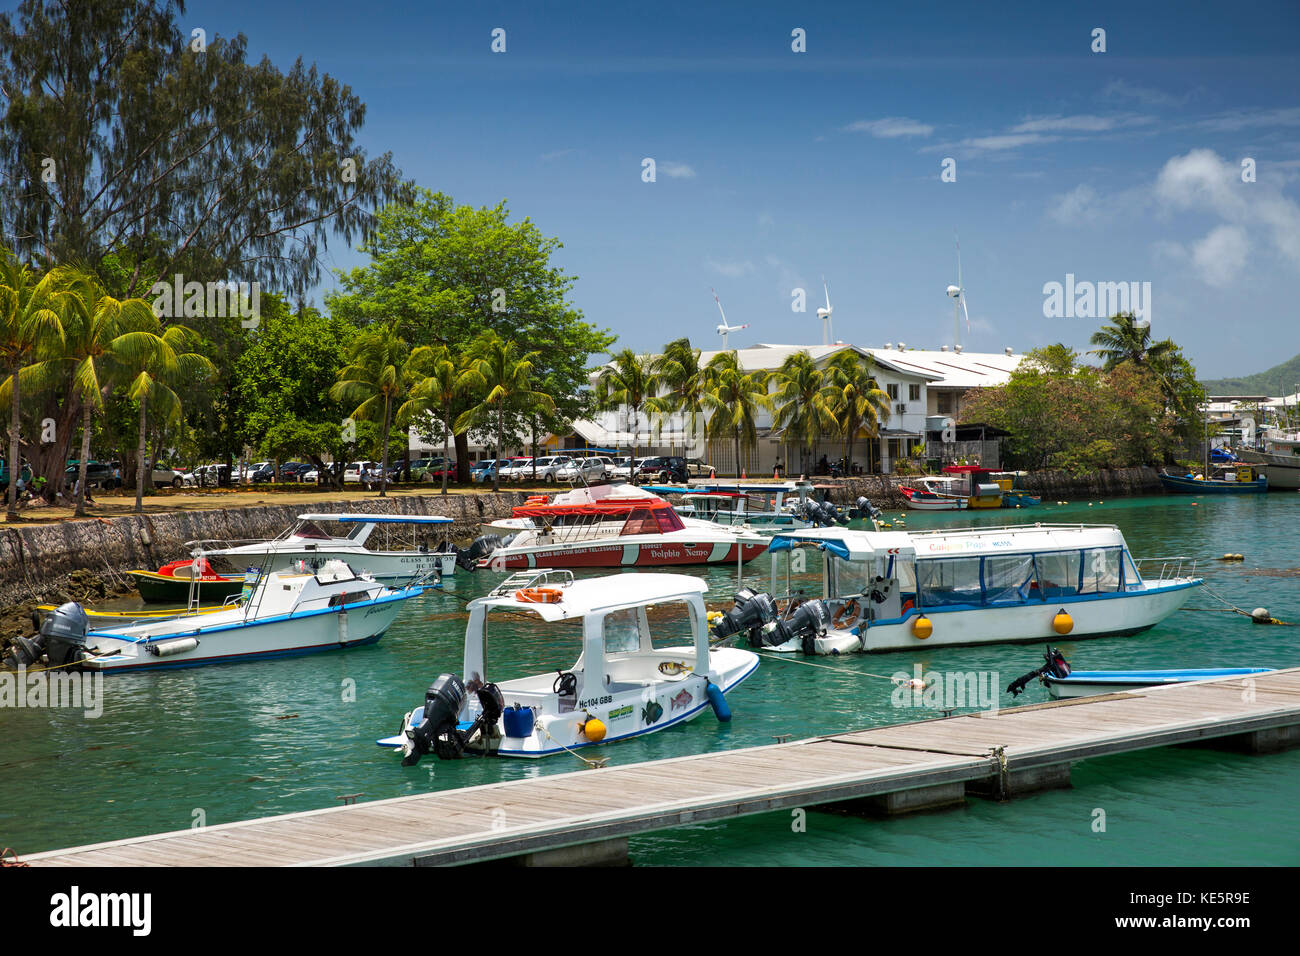 The Seychelles, Mahe, Victoria, Marine Charter Quay, leisure boats - Stock Image